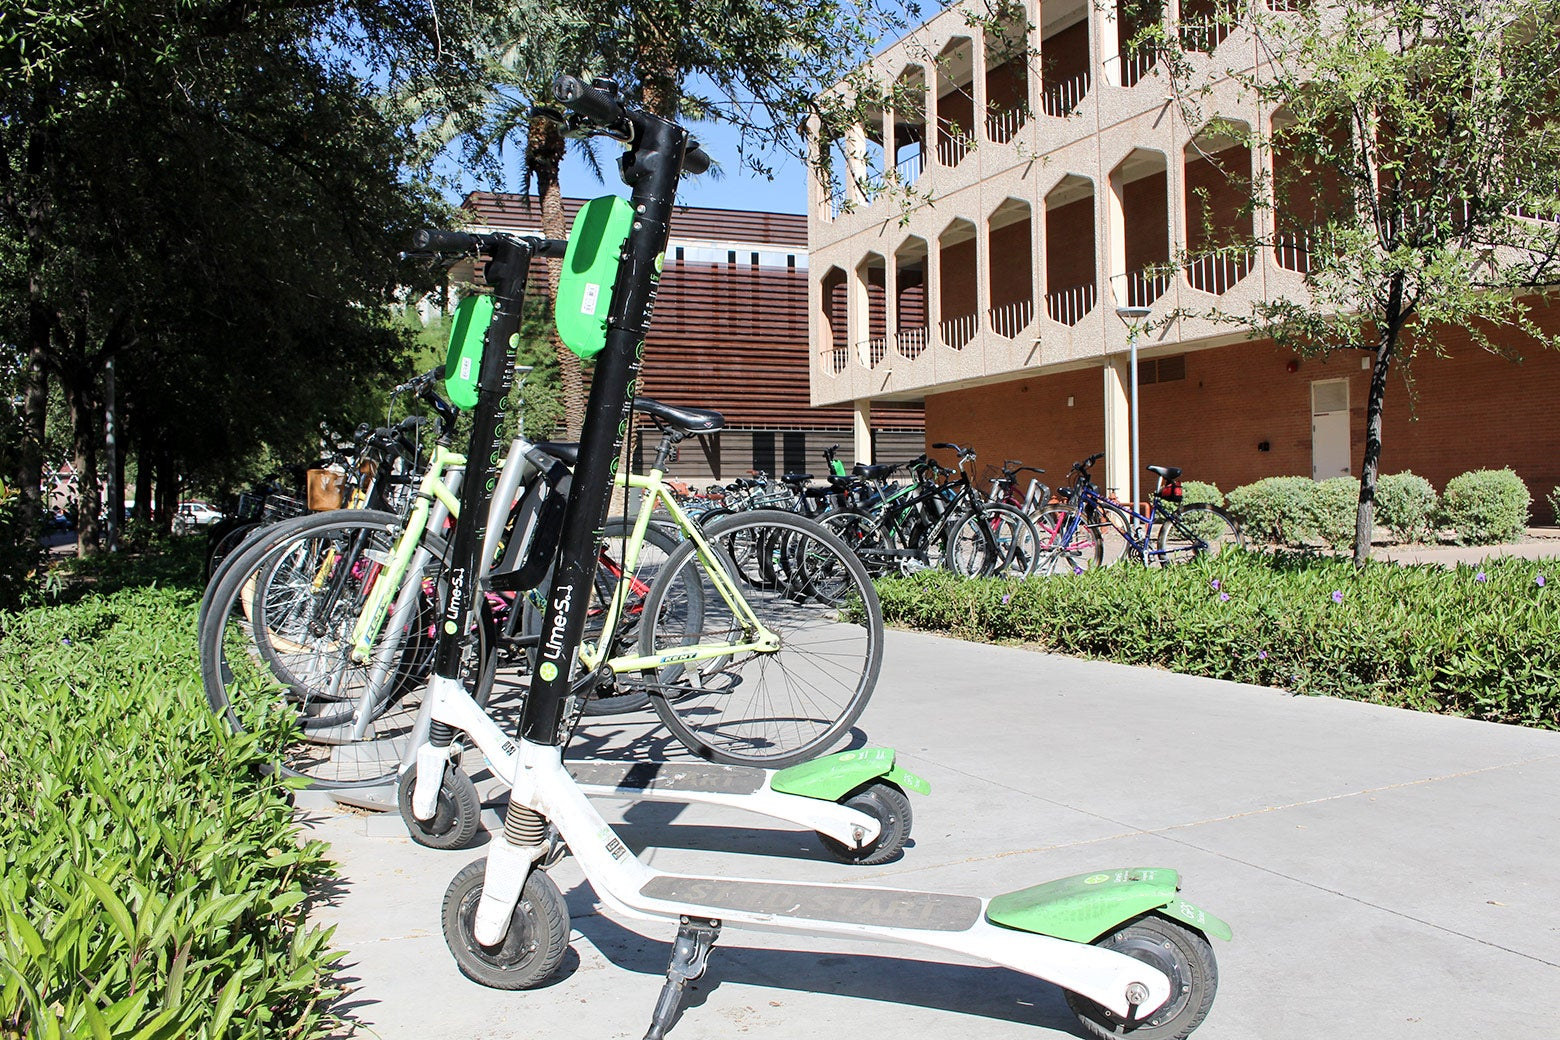 Lines of electric Lime scooters.